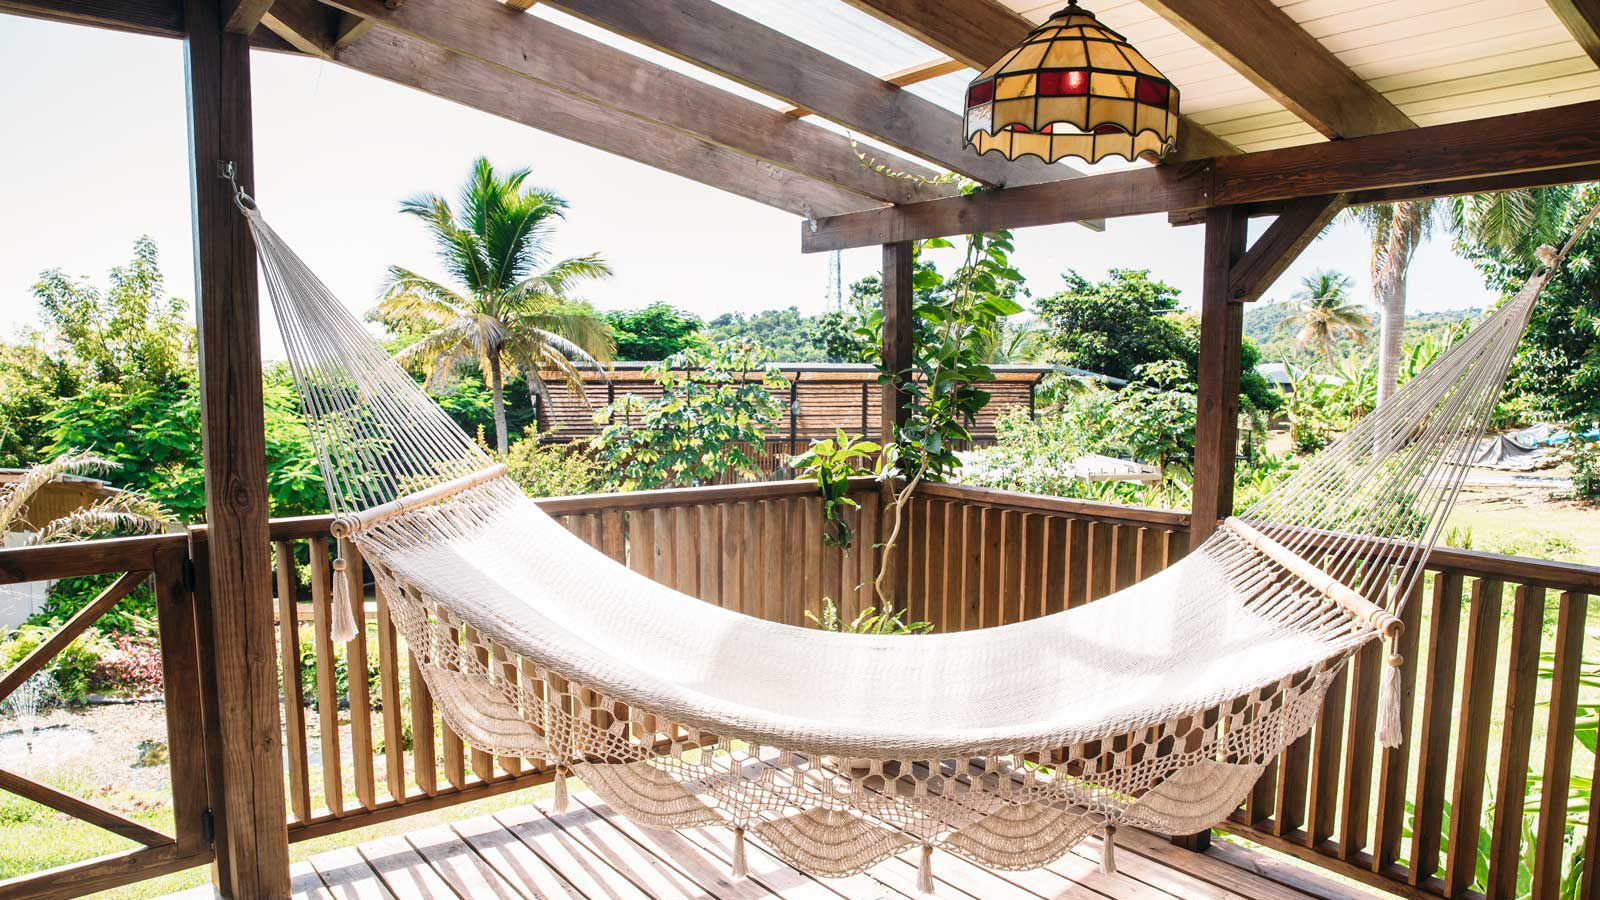 A hammock overlooking greenery on the balcony of the Finca Victoria hotel in Vieques, Puerto Rico